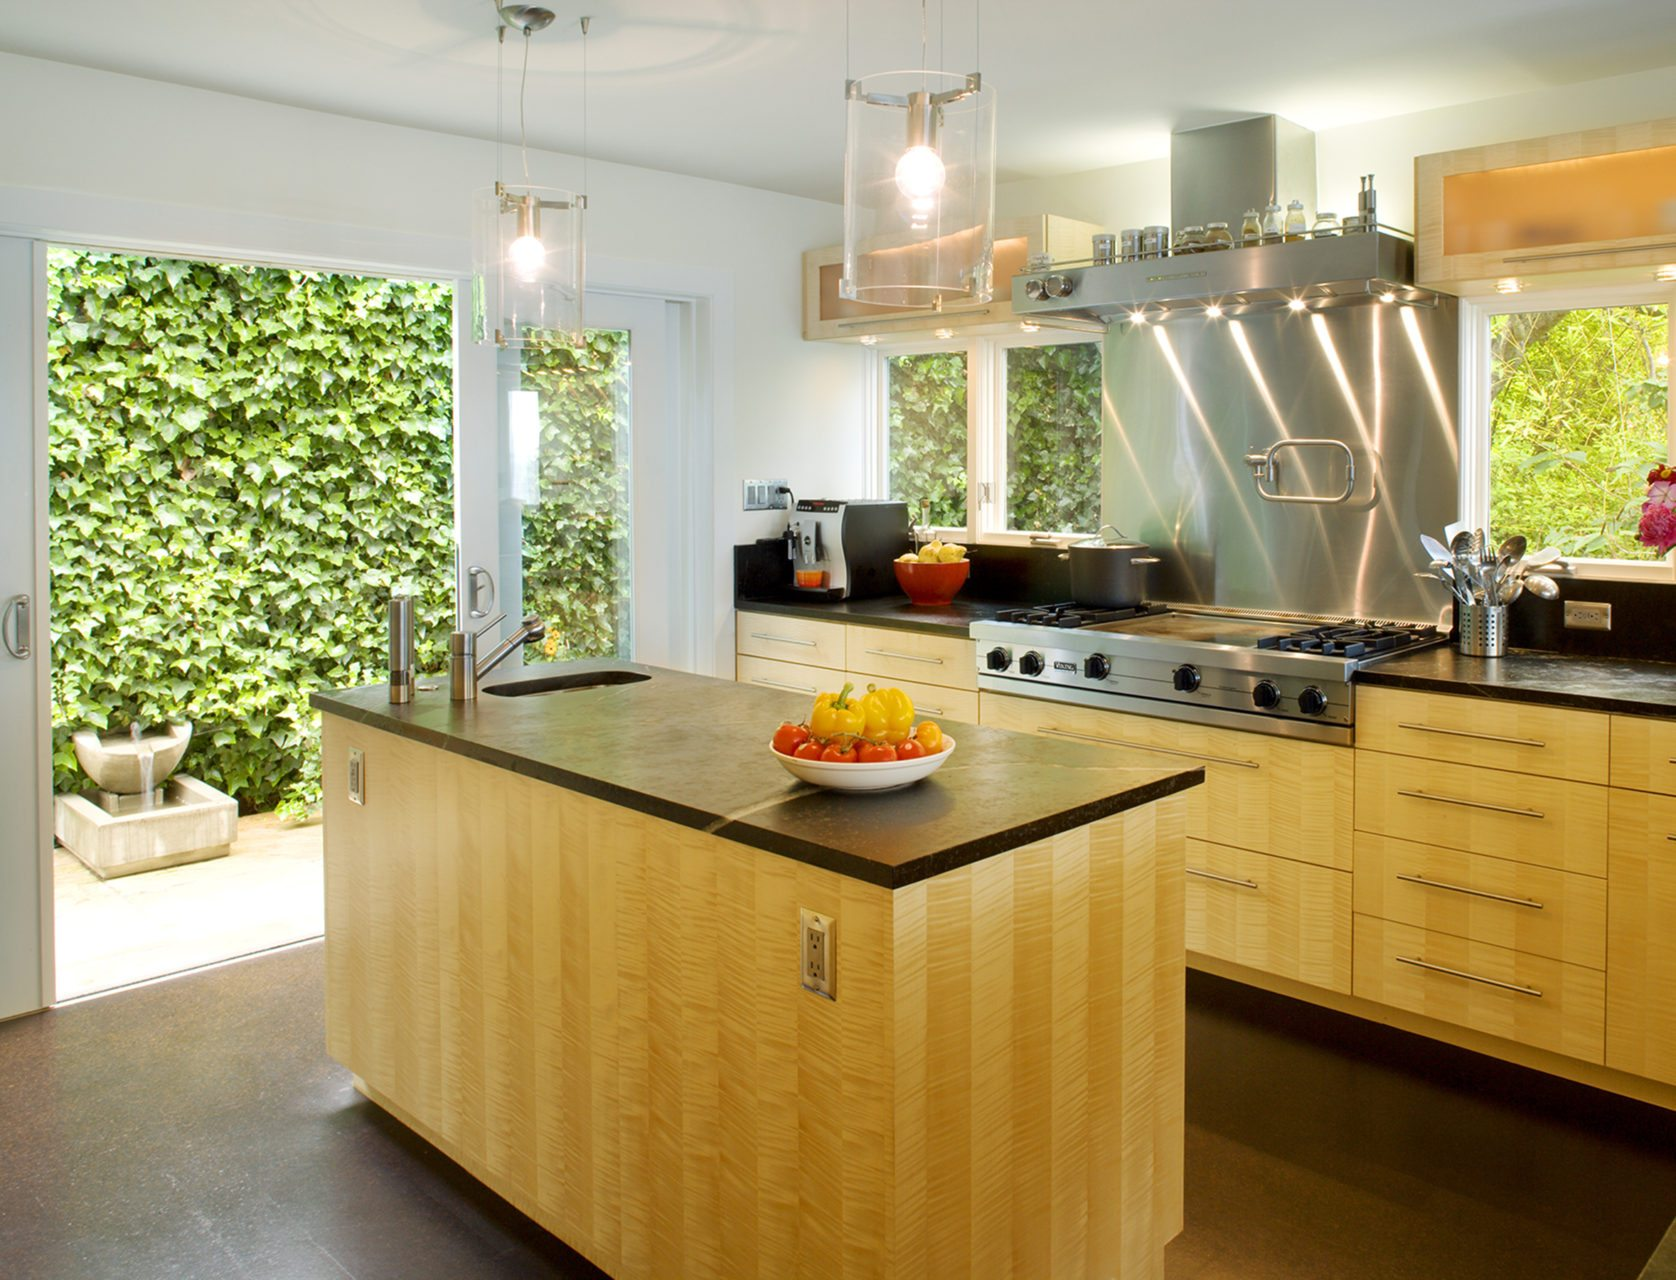 Image of natural light filled kitchen designed by Donnally Architects